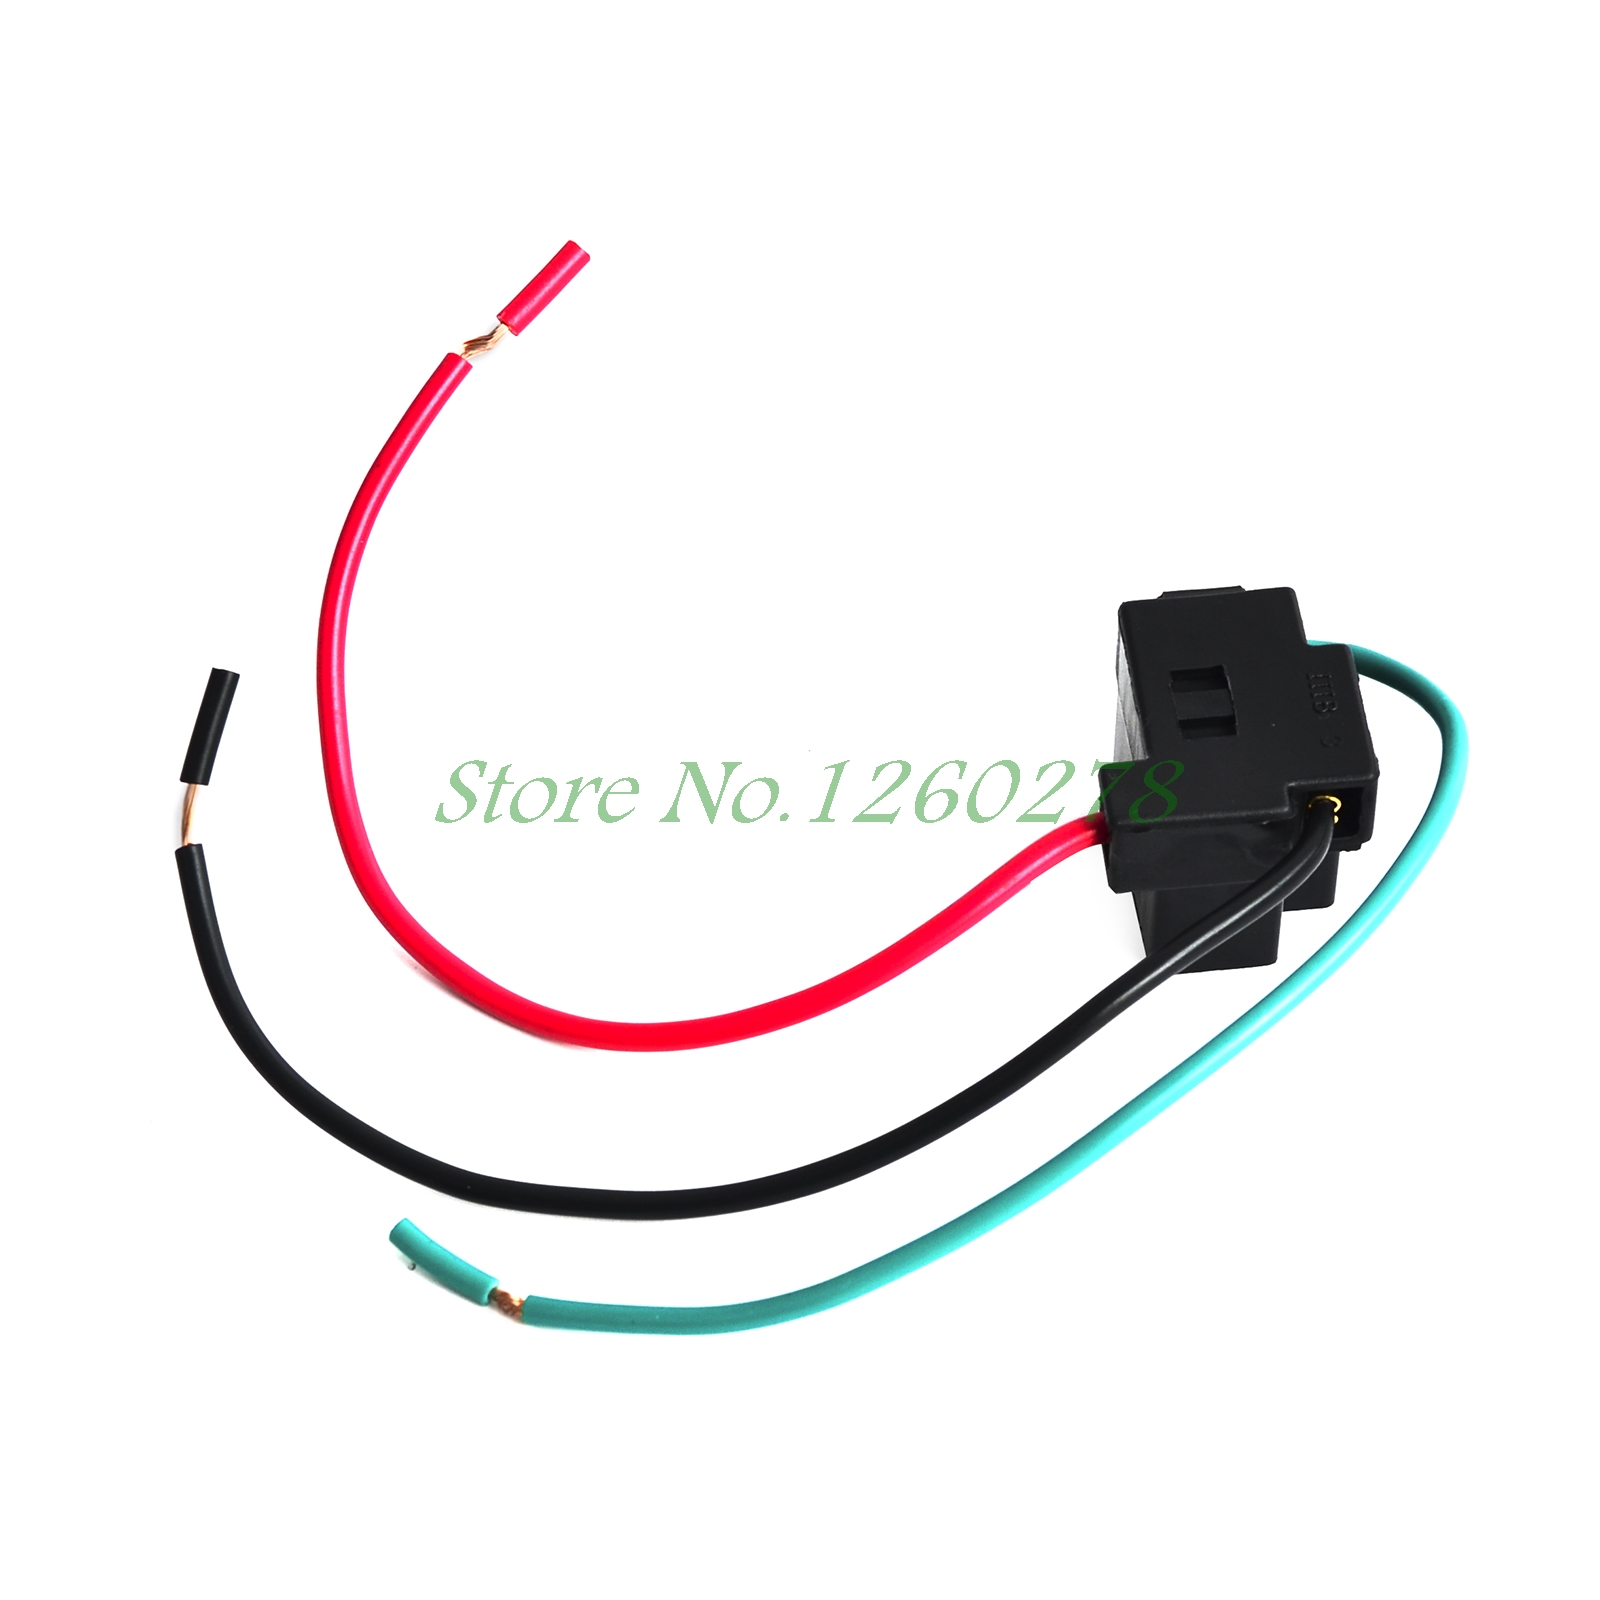 hight resolution of 2pcs h4 female adapter wiring harness sockets wire harness connector for headlights in car headlight bulbs led from automobiles motorcycles on